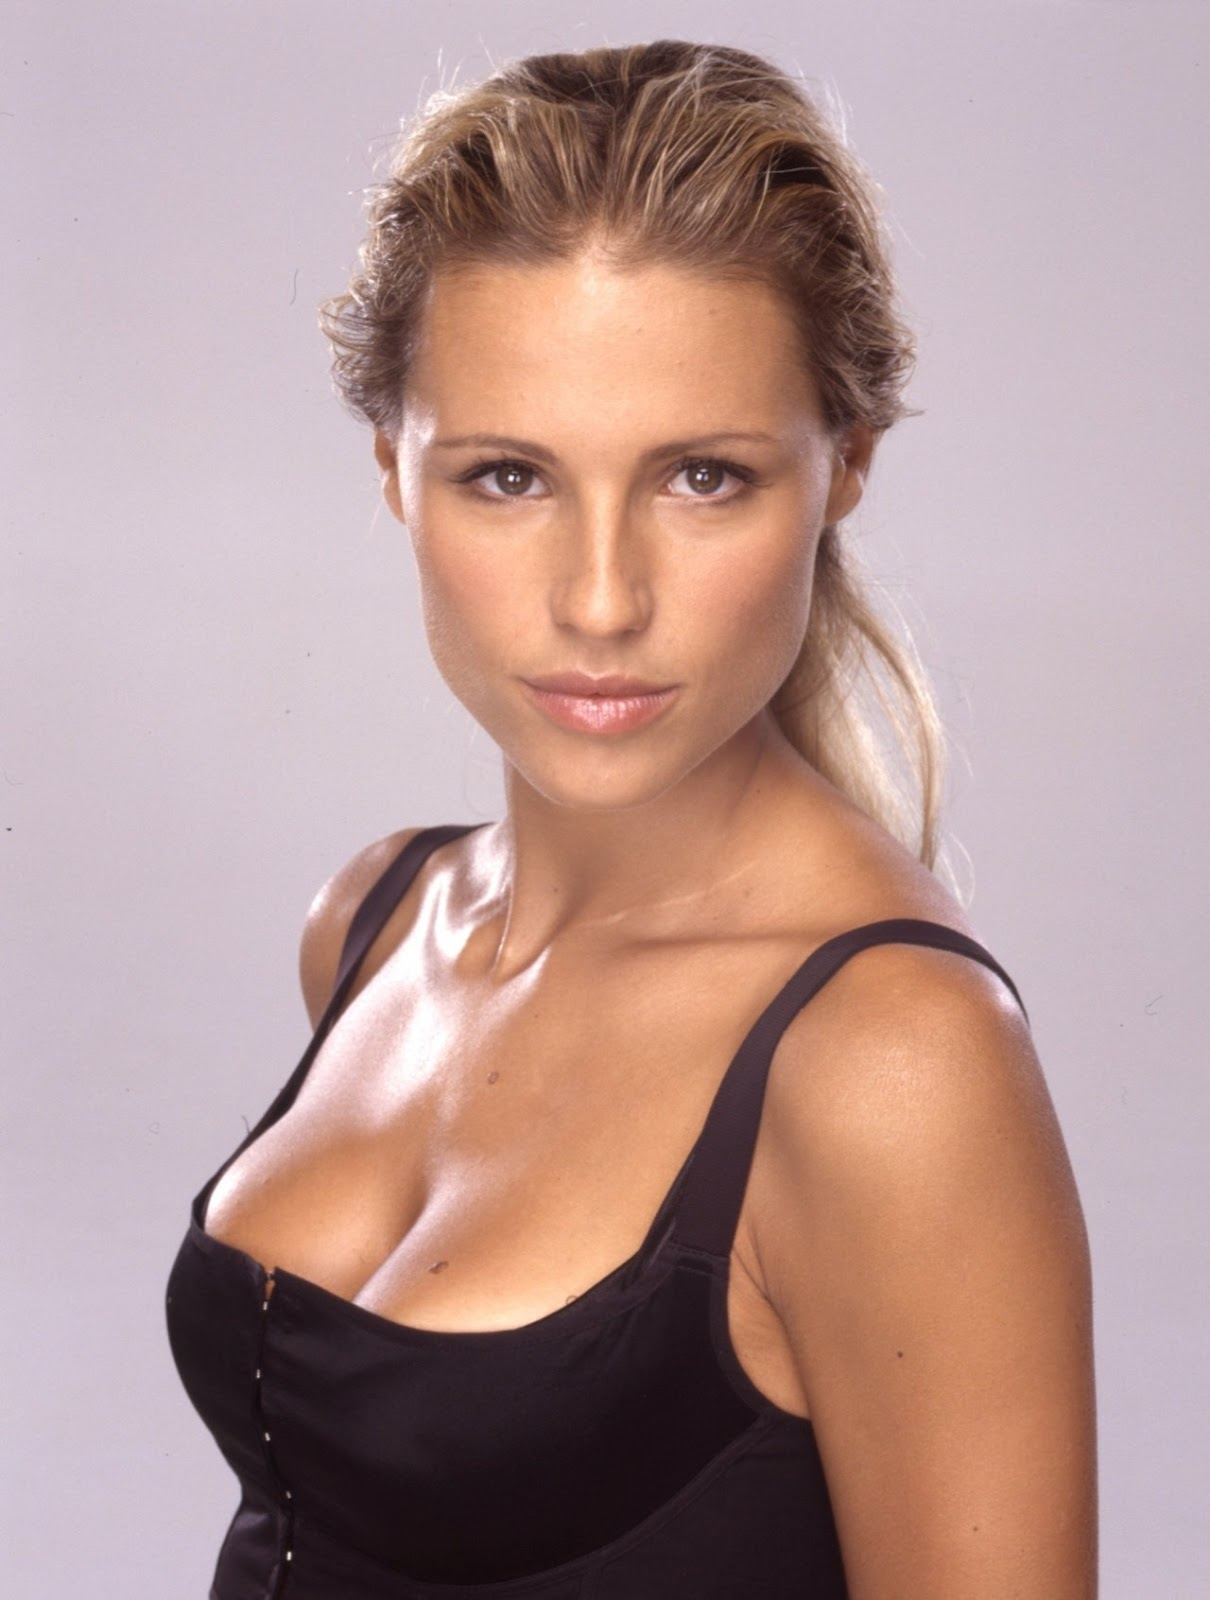 Cleavage Michelle Hunziker nude photos 2019